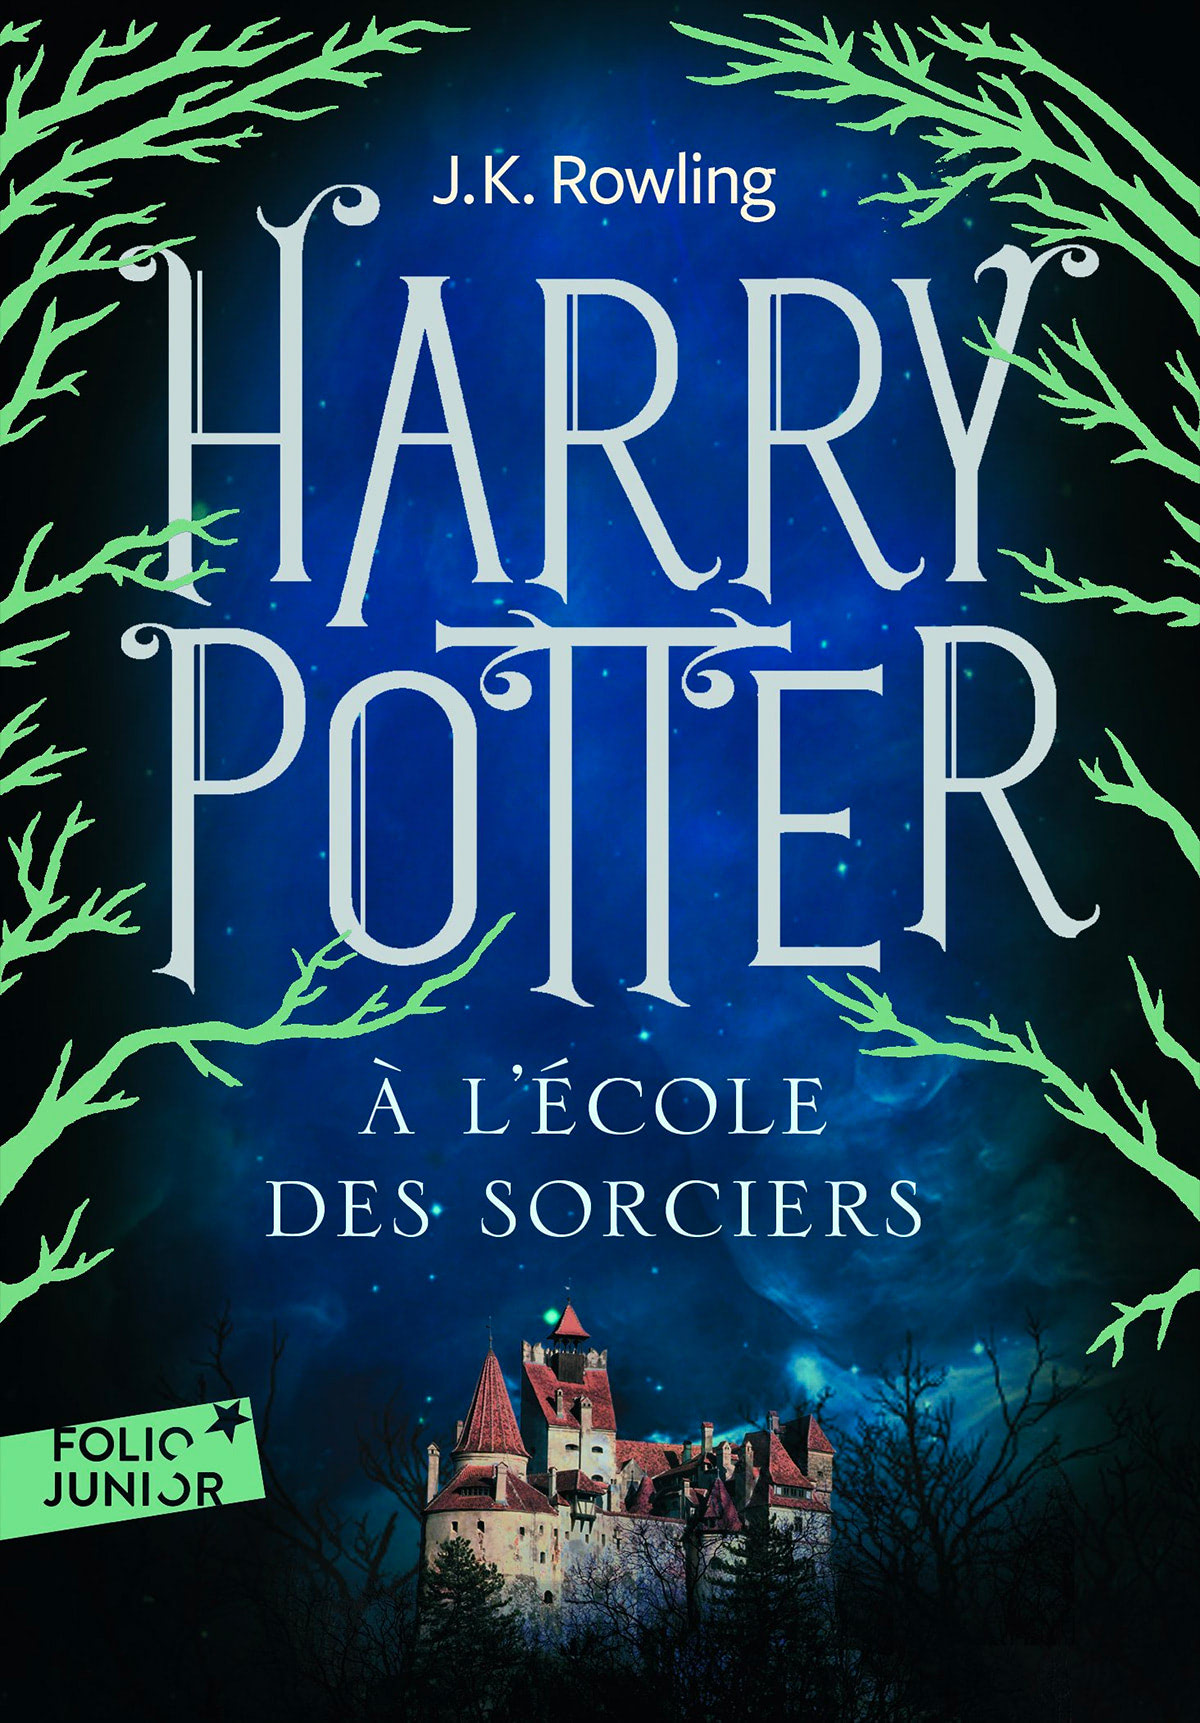 'Philosopher's Stone' French adult edition